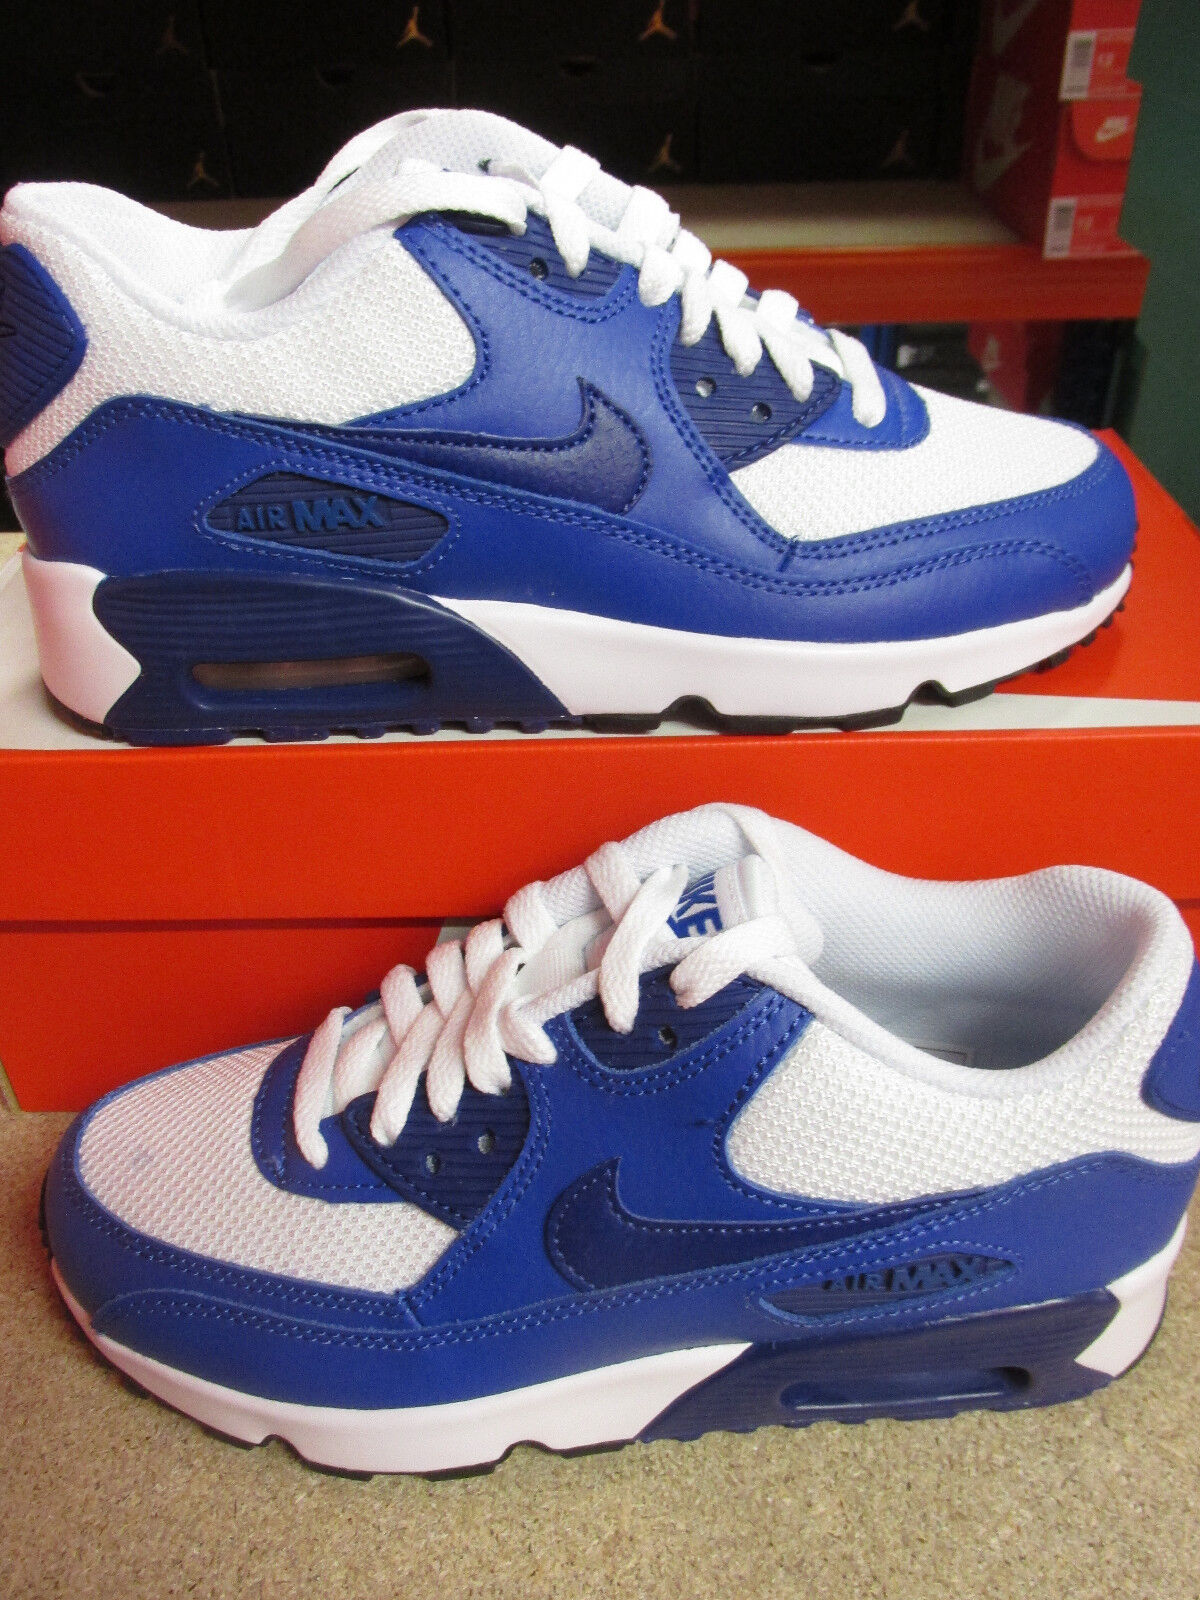 Nike Air Max 90 Mesh (GS) 833418 105 Sneakers Shoes